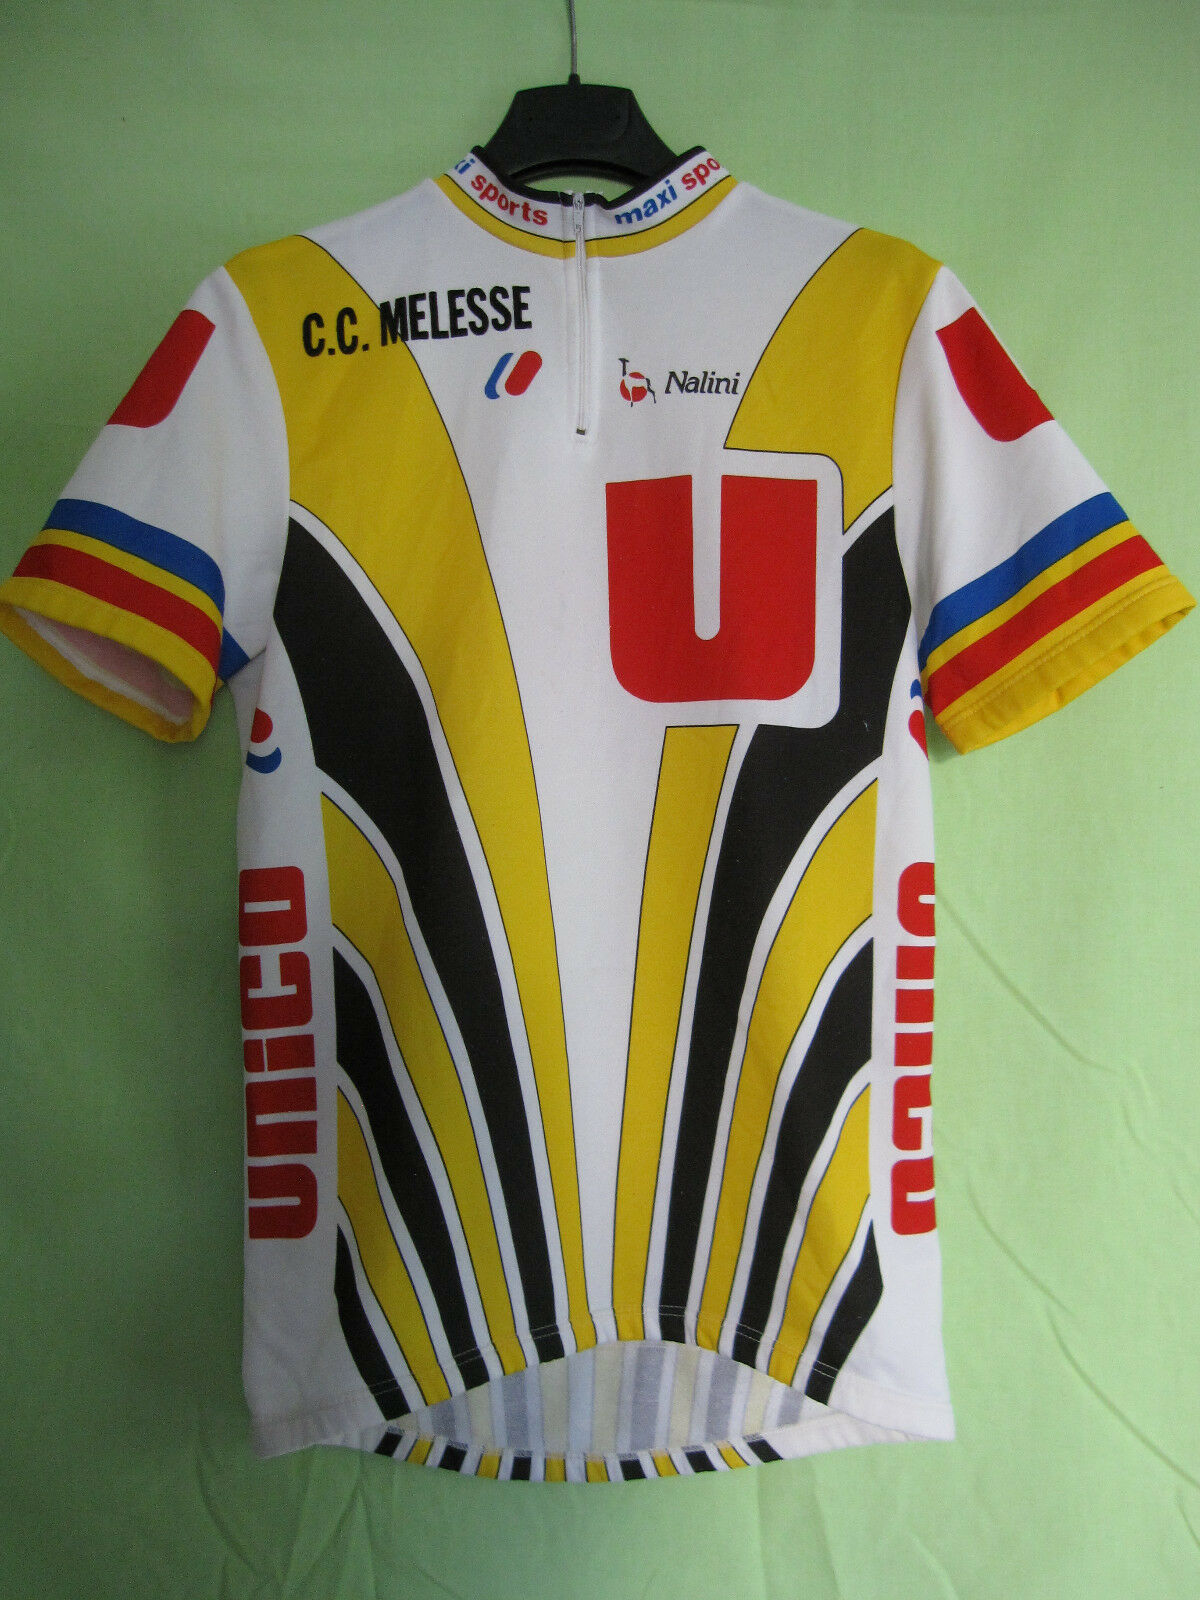 Maillot Cycliste vintage Systeme U Unico Nalini CC Melesse 80'S jersey - 4